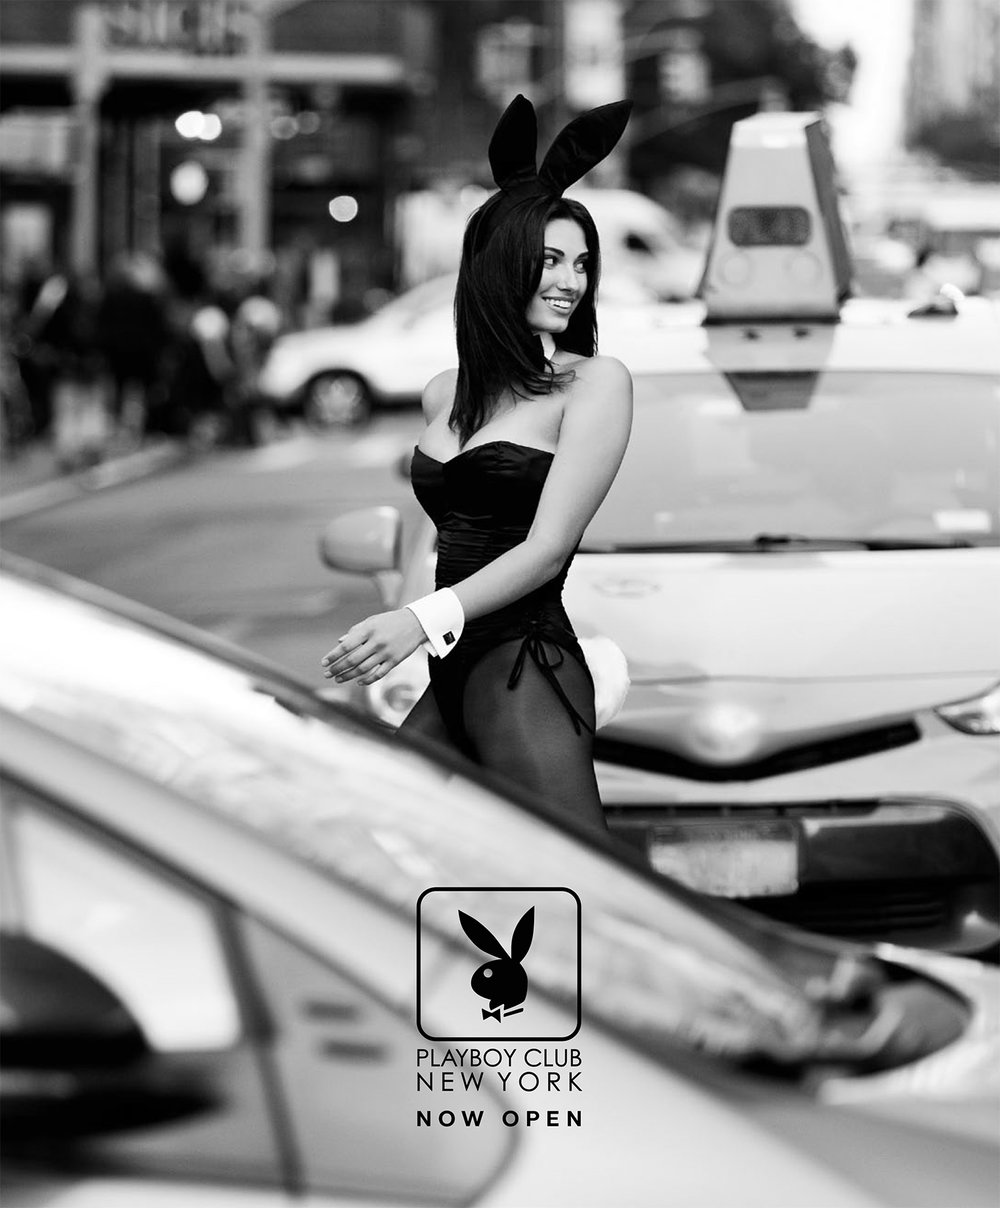 Playboy_Club_Ad_Walking_Now_Open.jpg